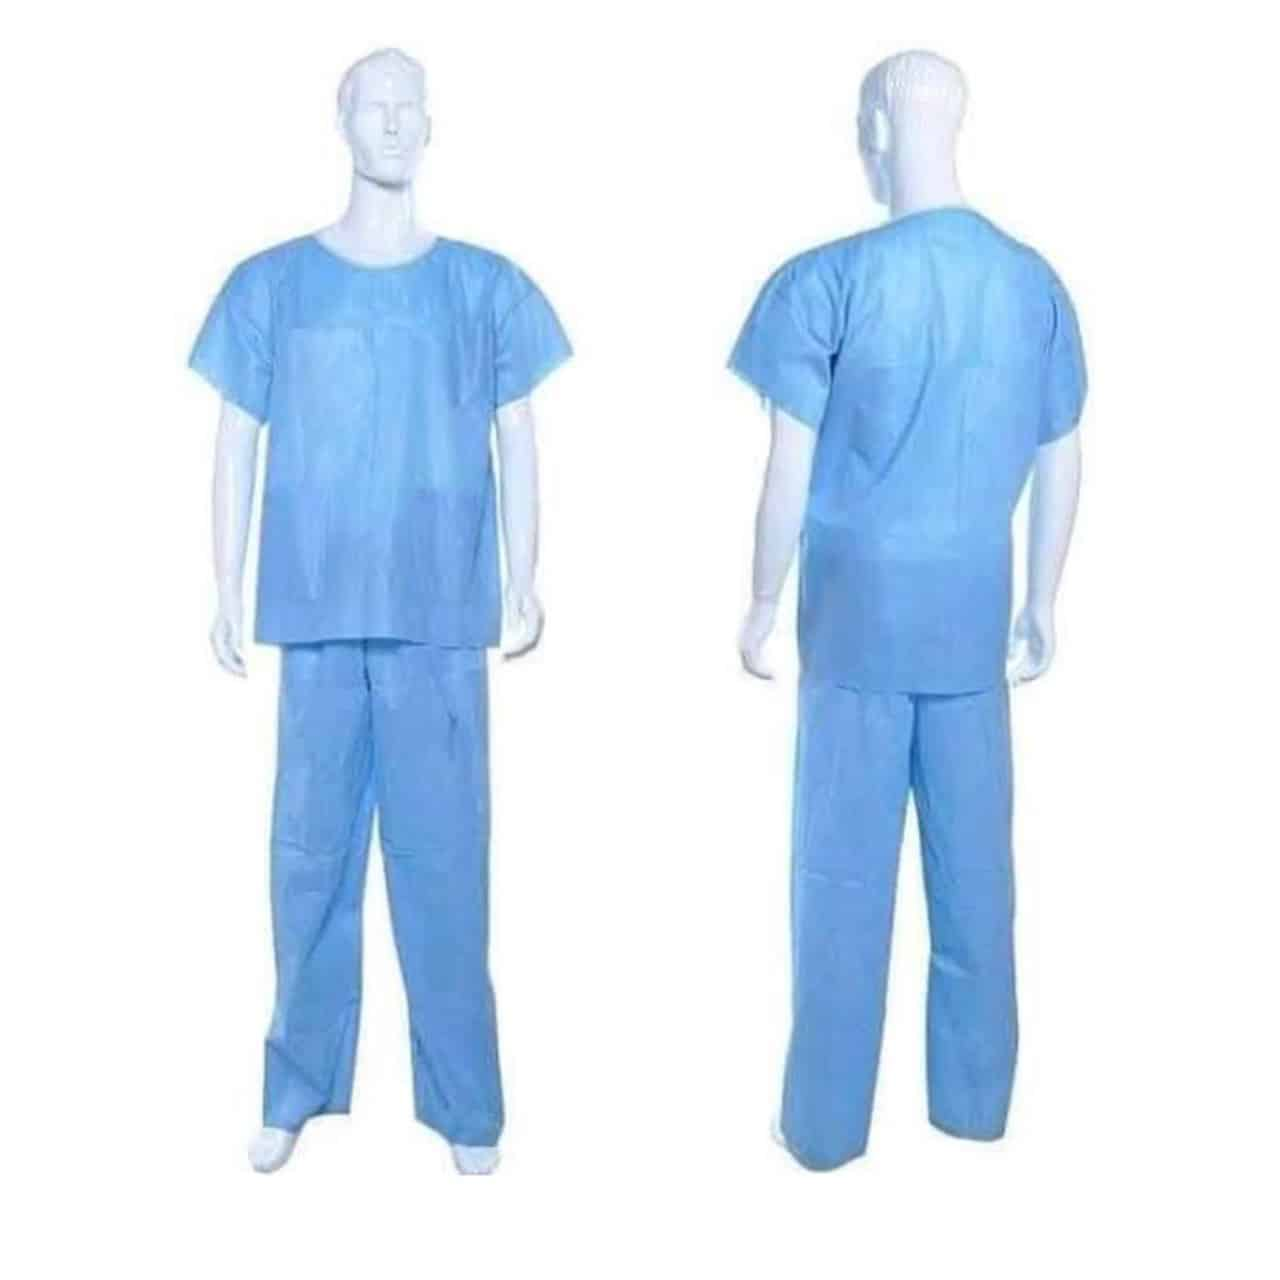 50 GSM Disposable Scrub Suit COVID-19 Products